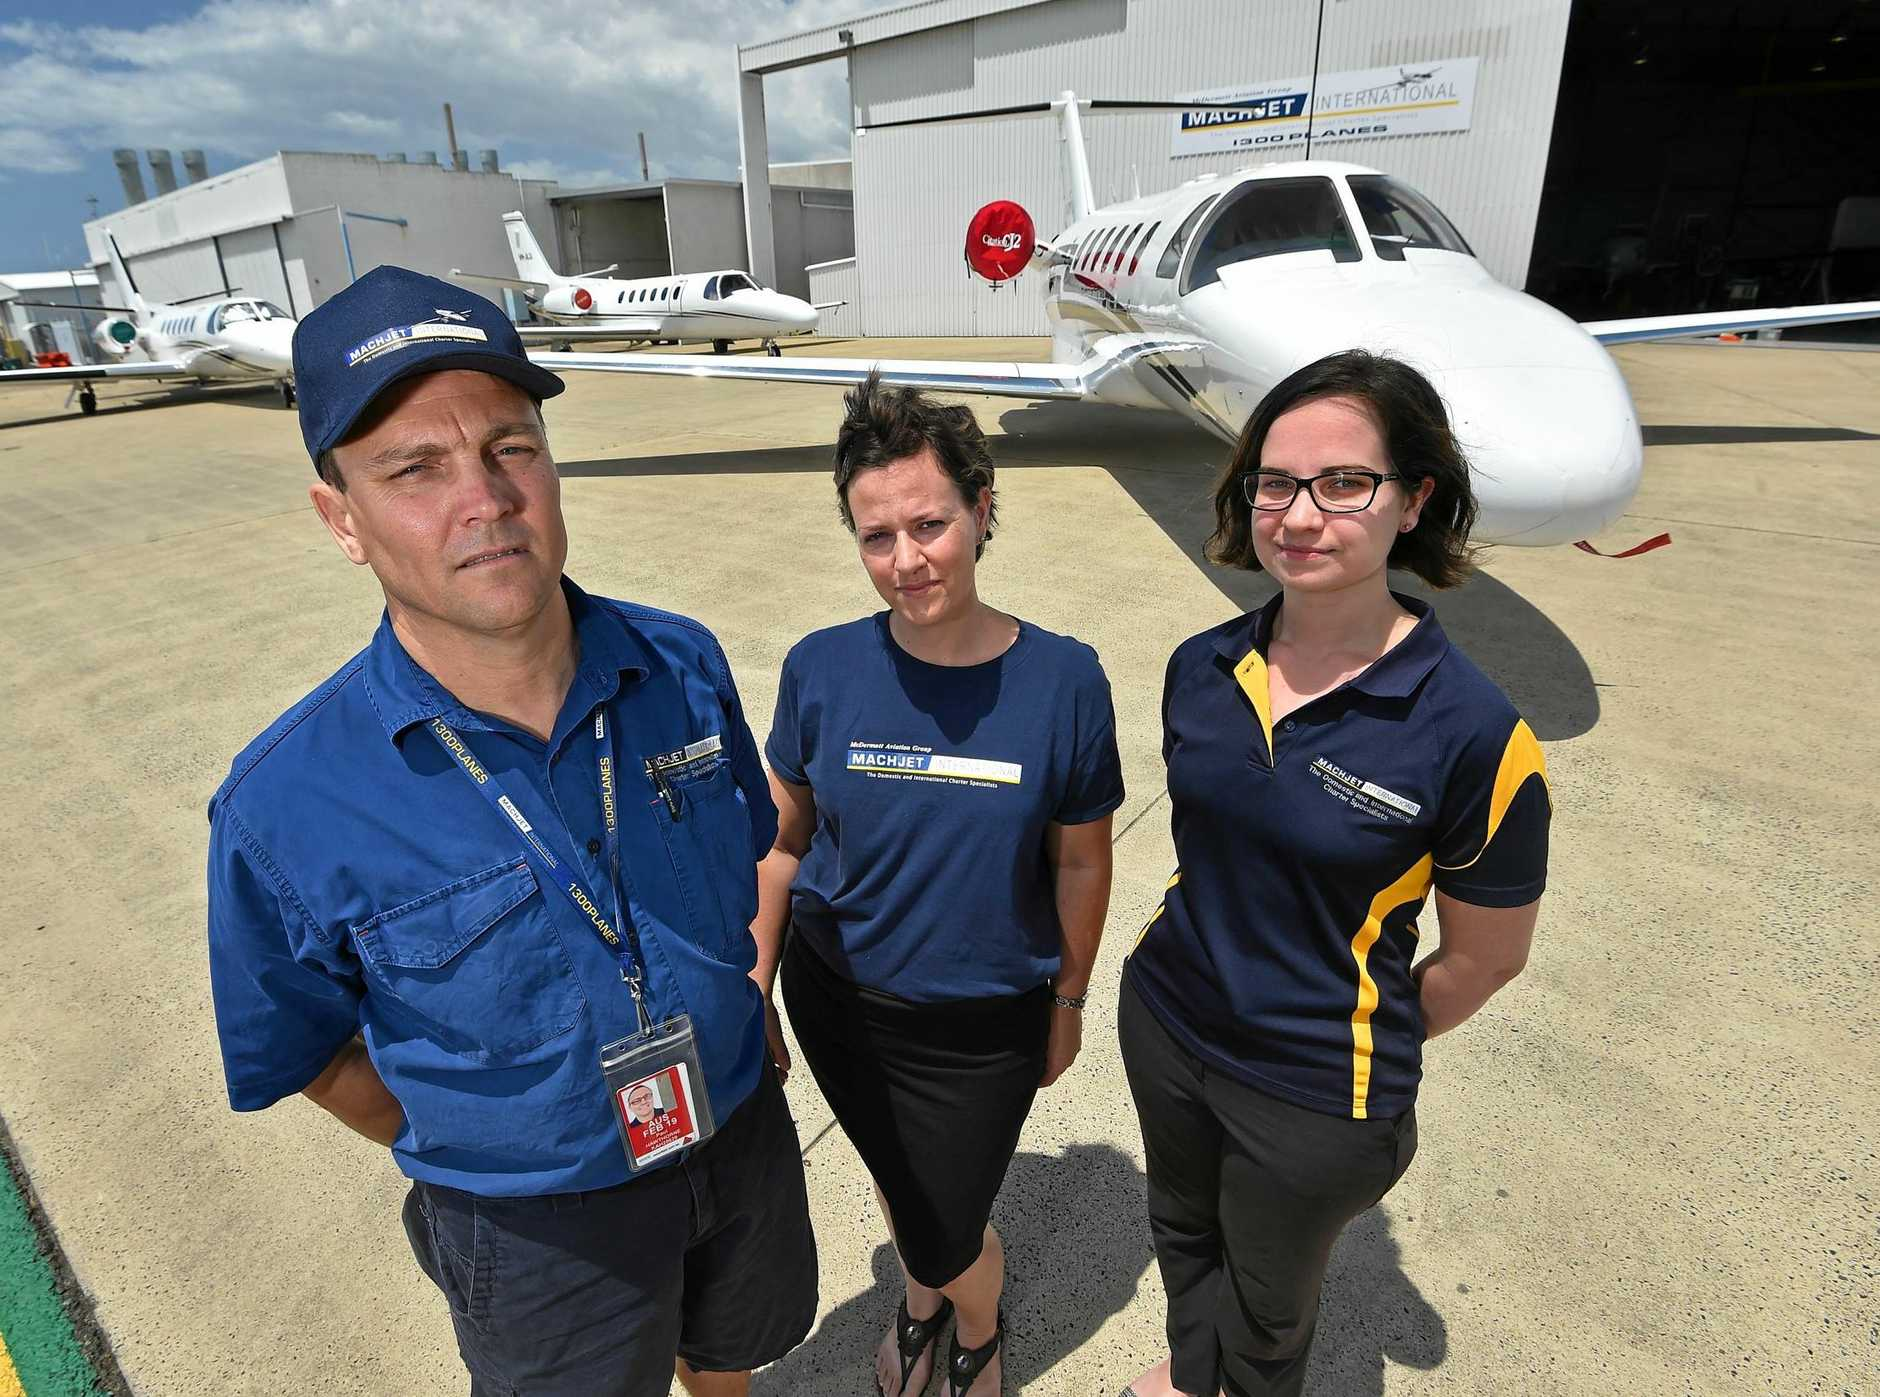 McDERMOTT Aviation senior engineer Paul Hawthorne with technical records assistant Rochelle Cooper and operations coordinator Jesse Wilson have planes on standby to get politicians on the campaign trail.